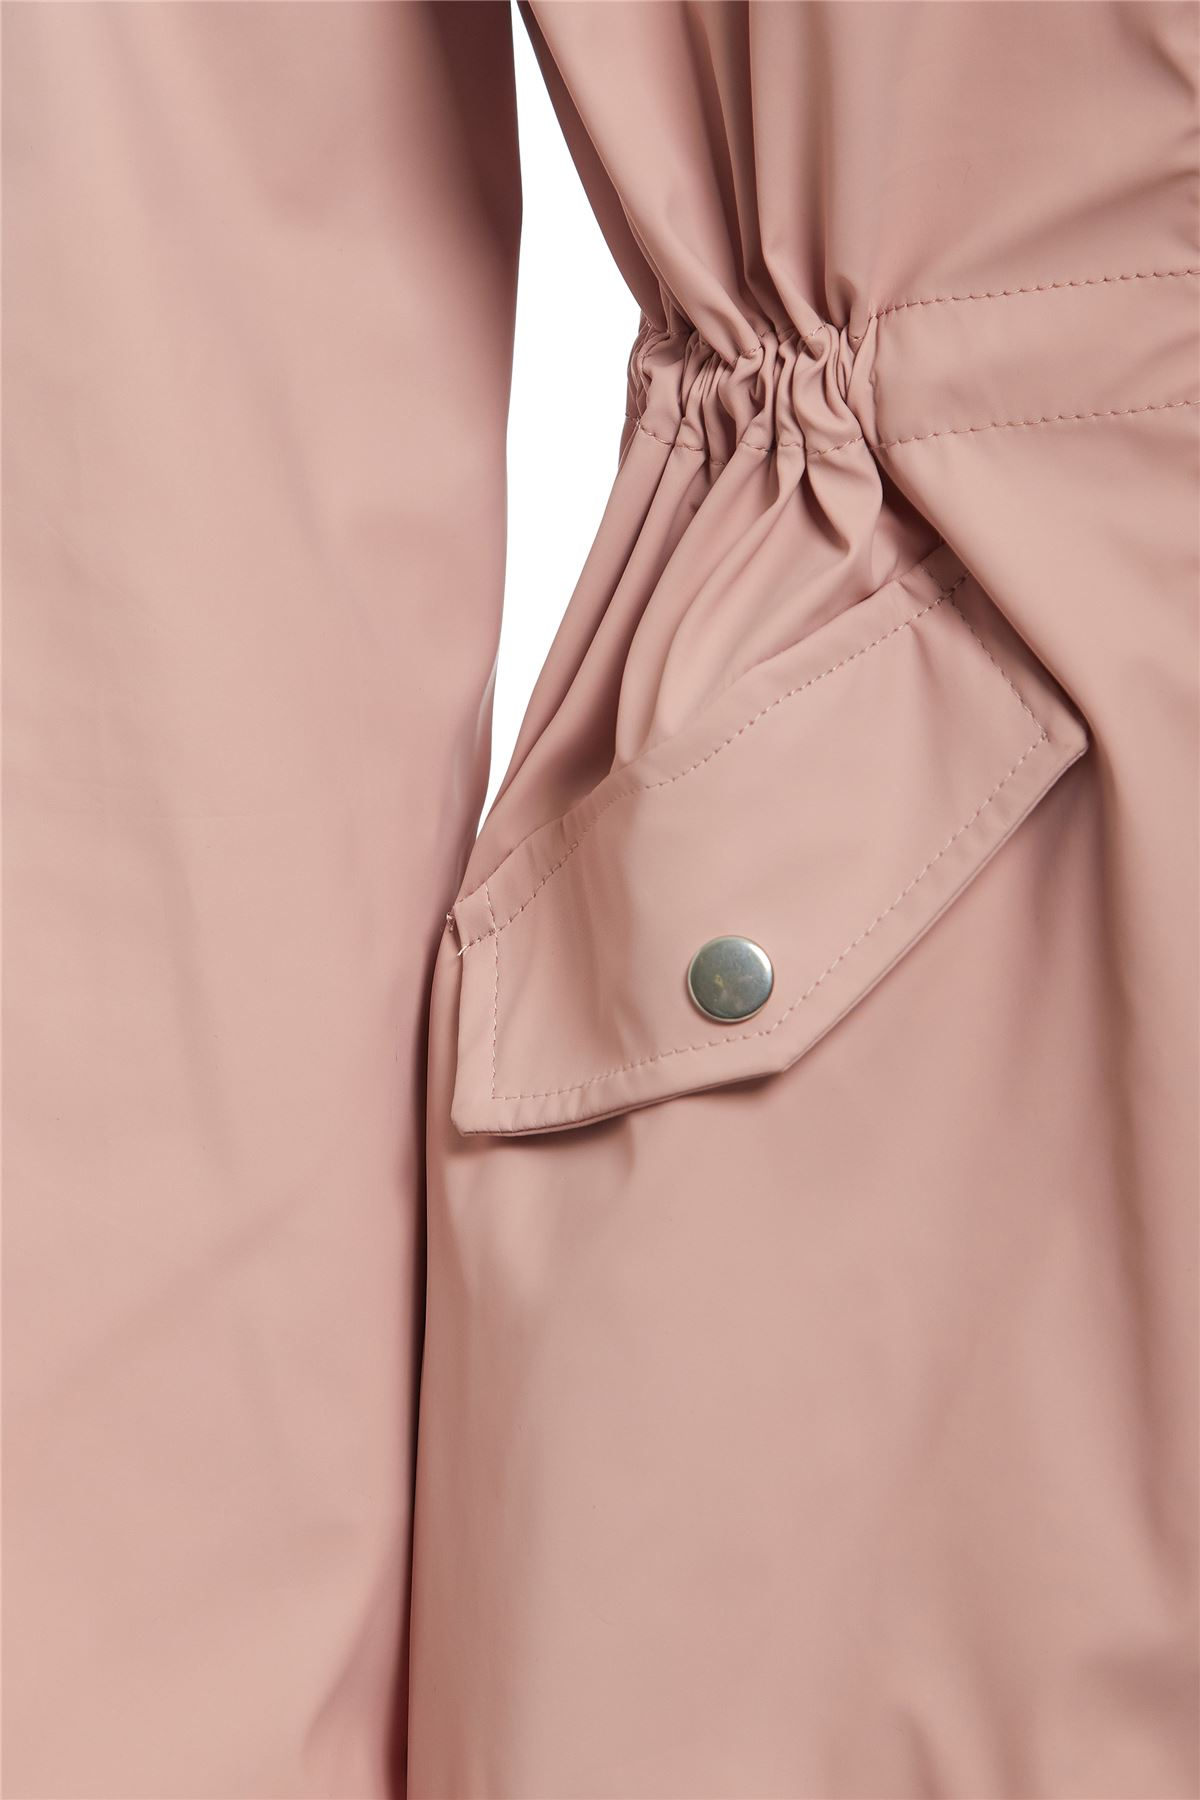 shelikes New Womens Hooded Poppered Flap Zip Raincoat Kagool Cagoule Mac Jacket 8-16